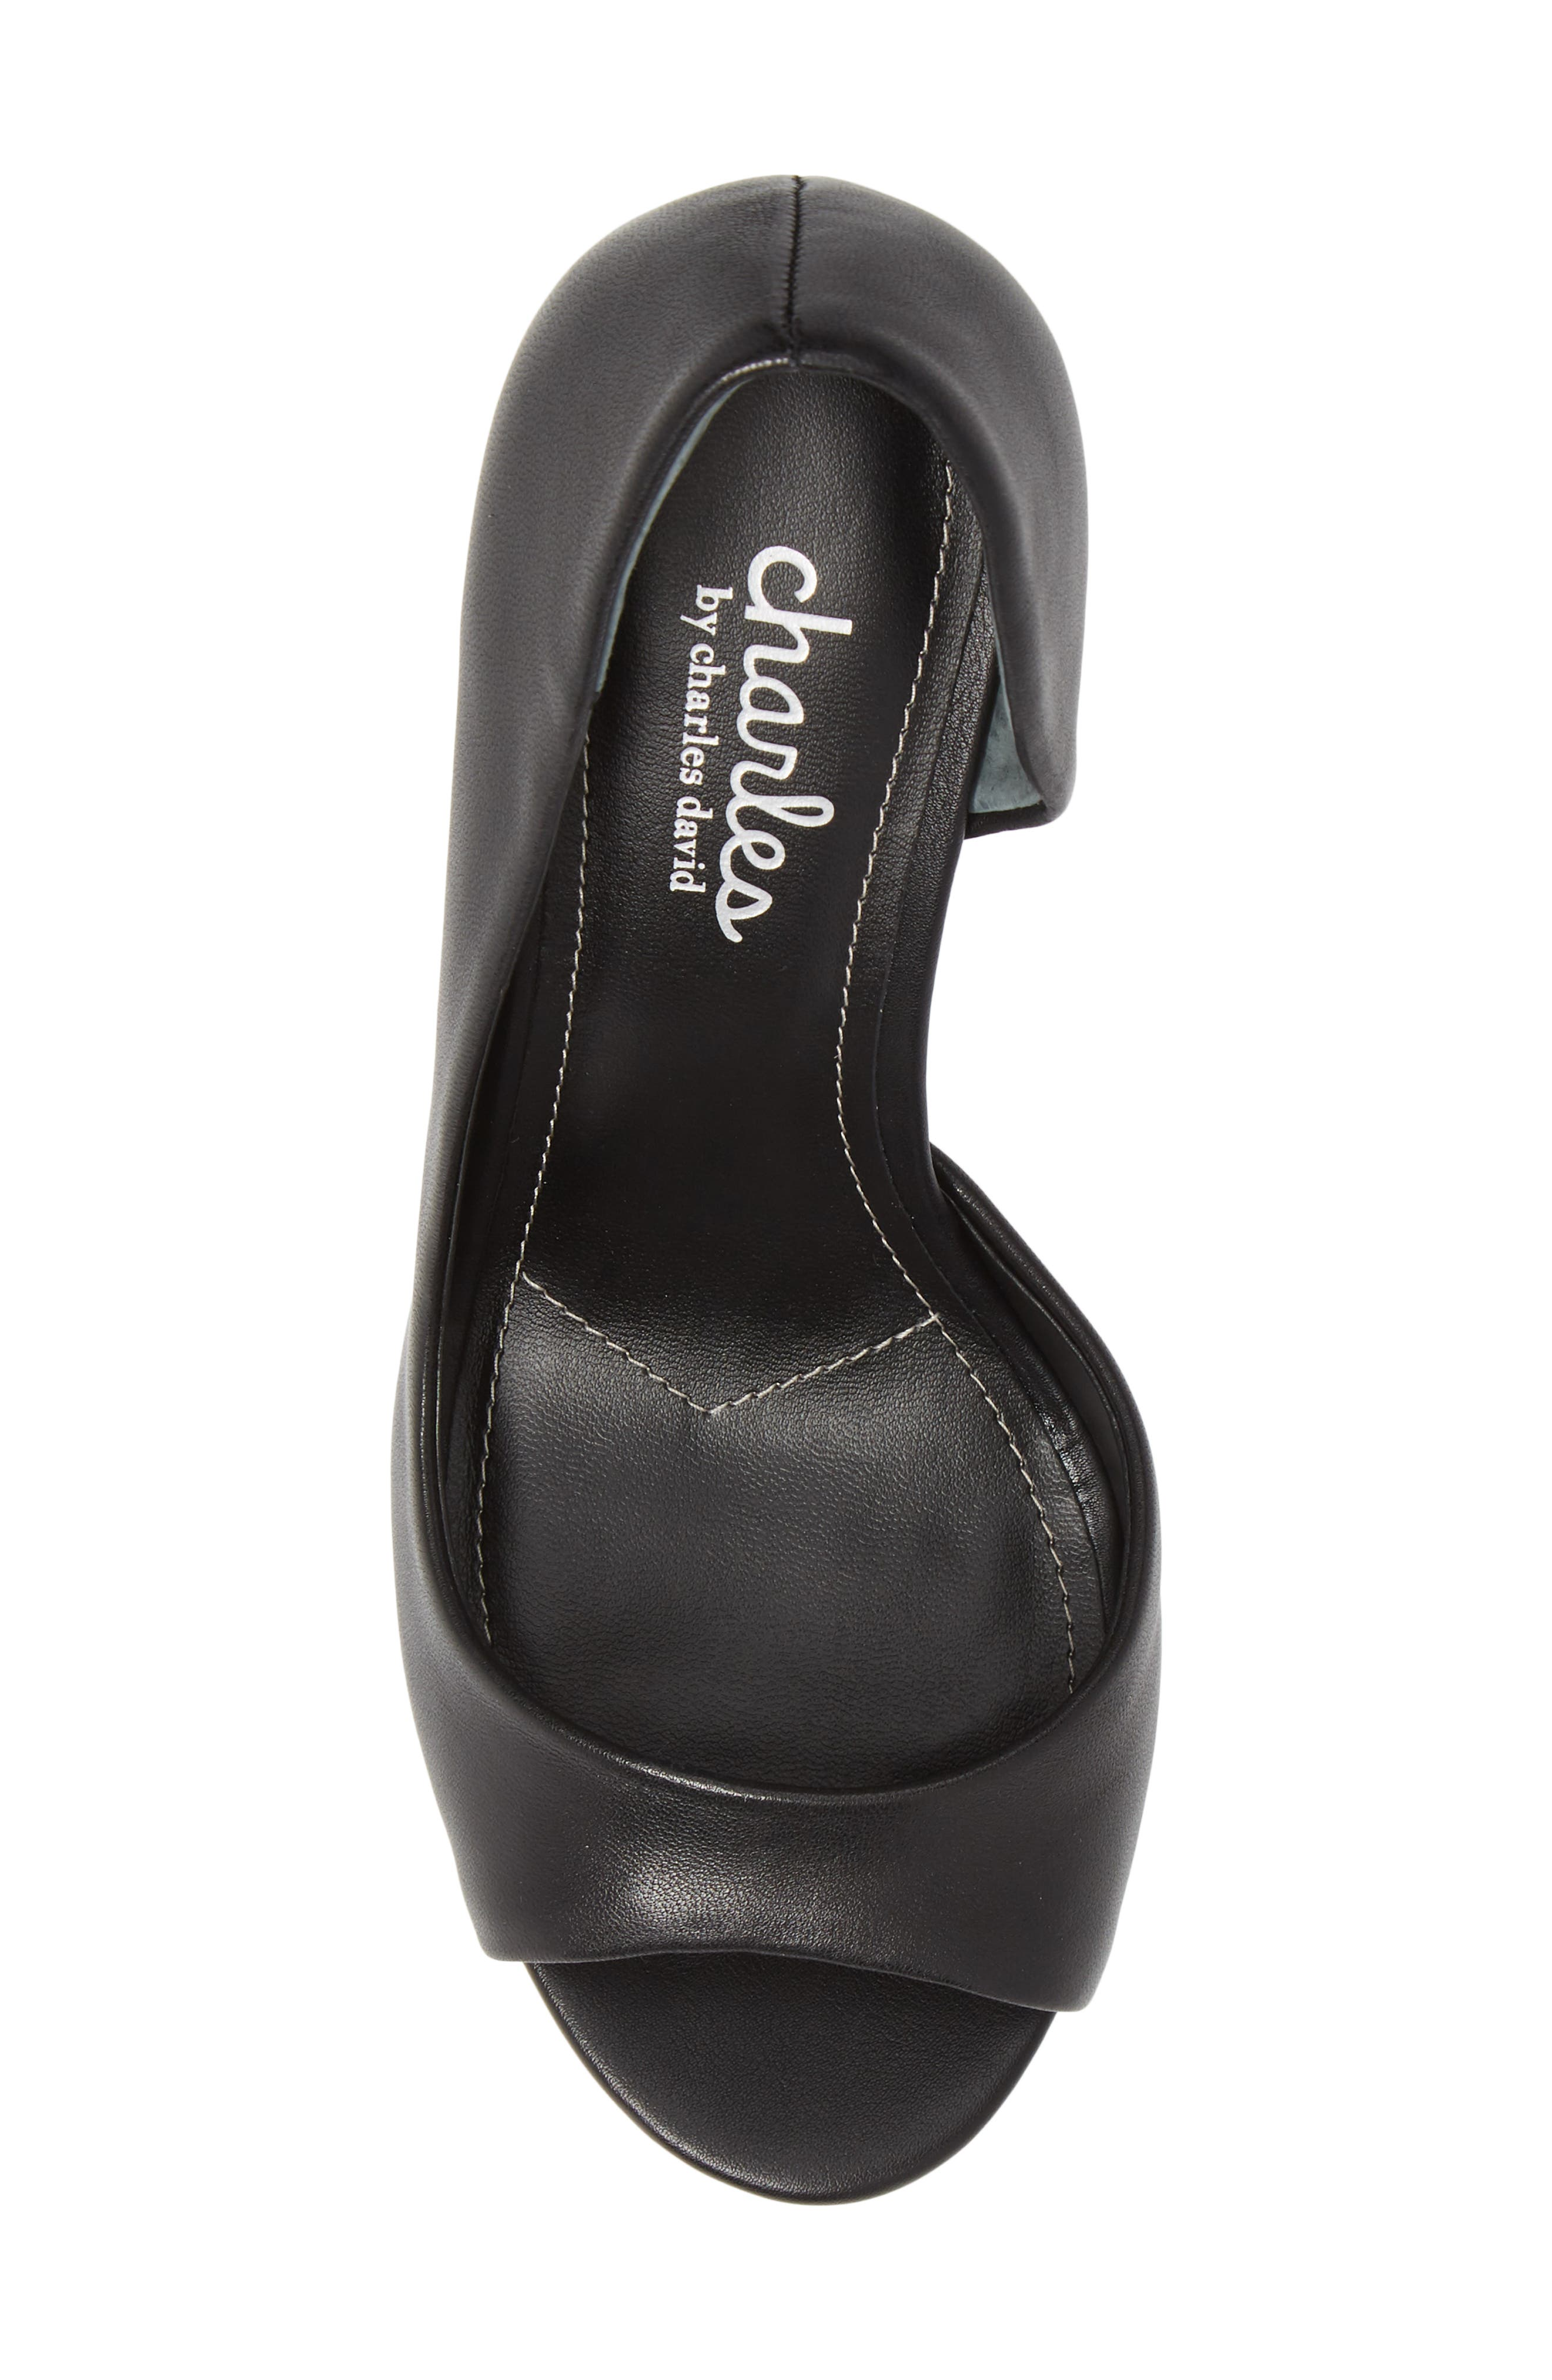 CHARLES BY CHARLES DAVID, Chess Open Toe Pump, Alternate thumbnail 5, color, BLACK LEATHER